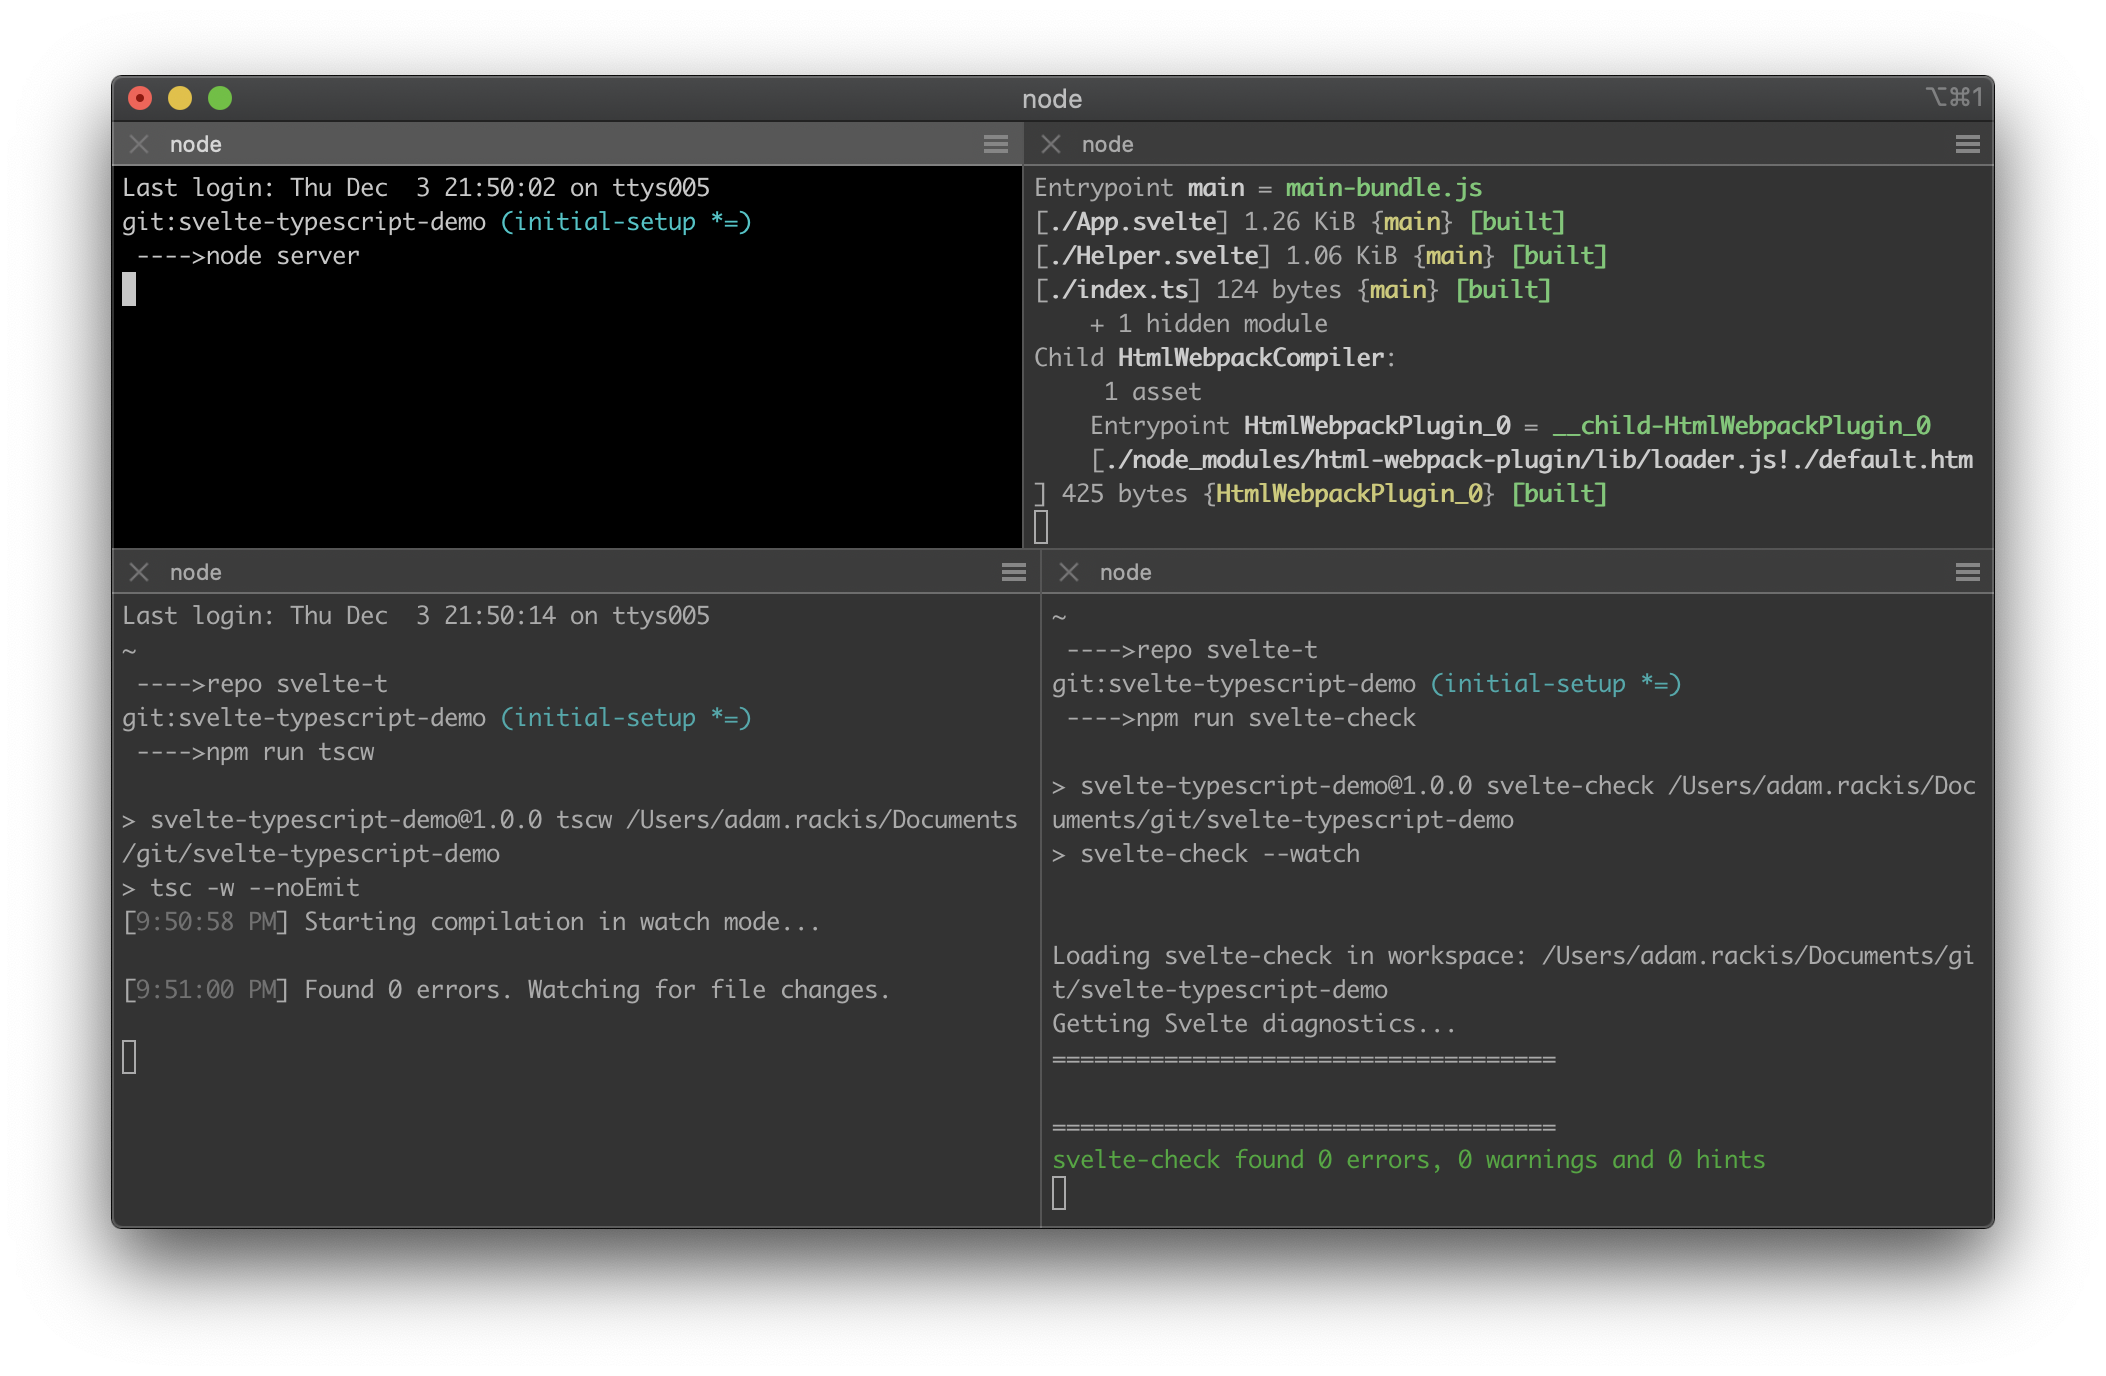 Showing iTerm2 window with four open terminals in a two-by-two grid.